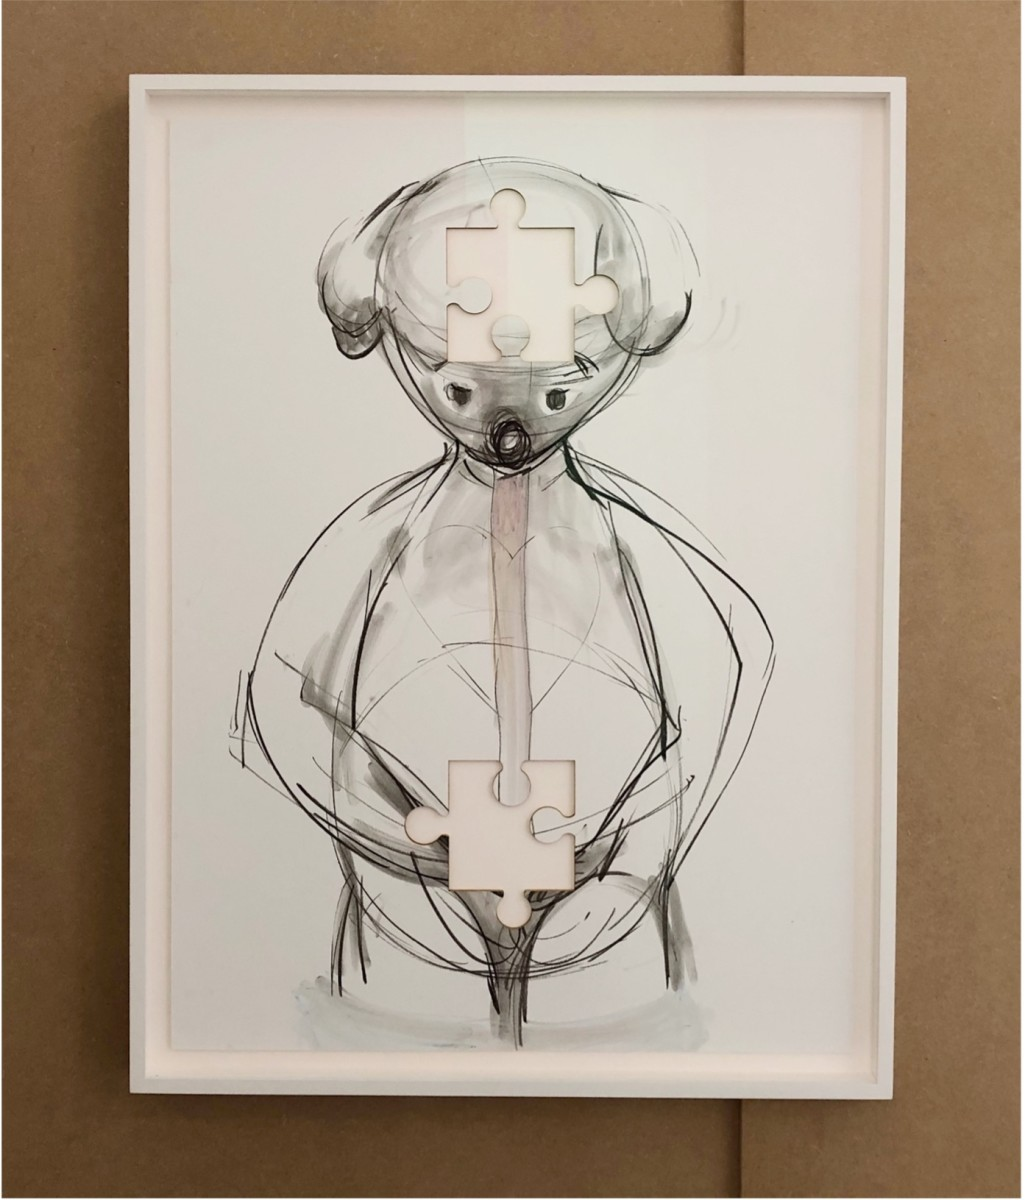 Simon Fujiwara Who is Puzzled (Double Void), 2021 Charcoal and pastel on foam core 73 x 97 x 4,6 cm (28 3/4 x 38 1/4 x 1 3/4 in)